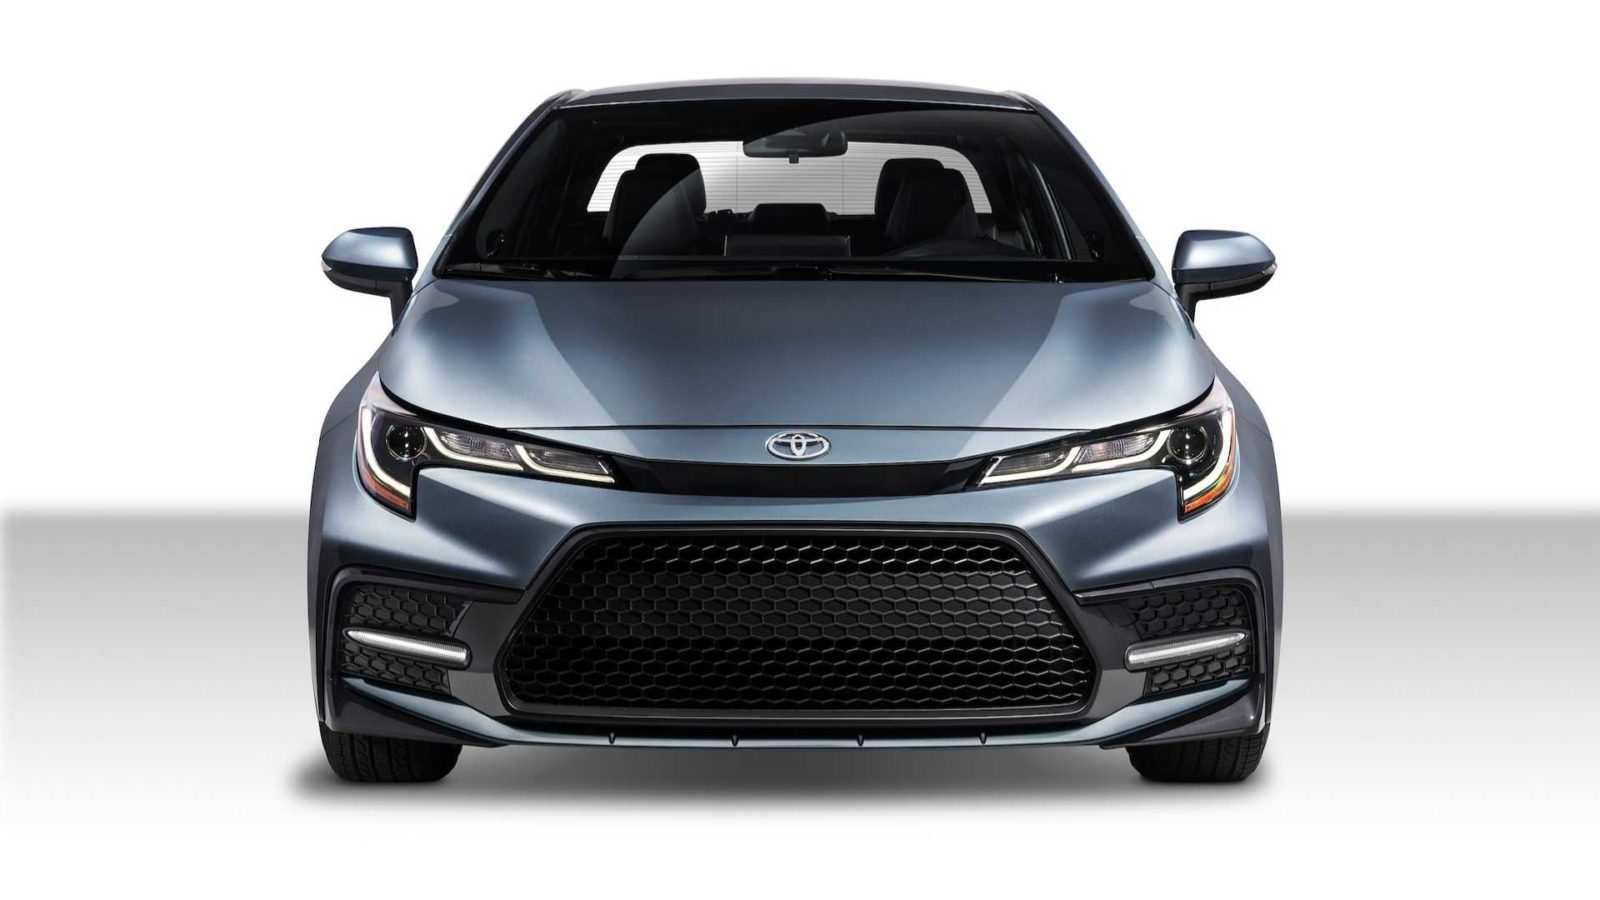 13 Concept of Toyota Xli 2020 Model Prices with Toyota Xli 2020 Model